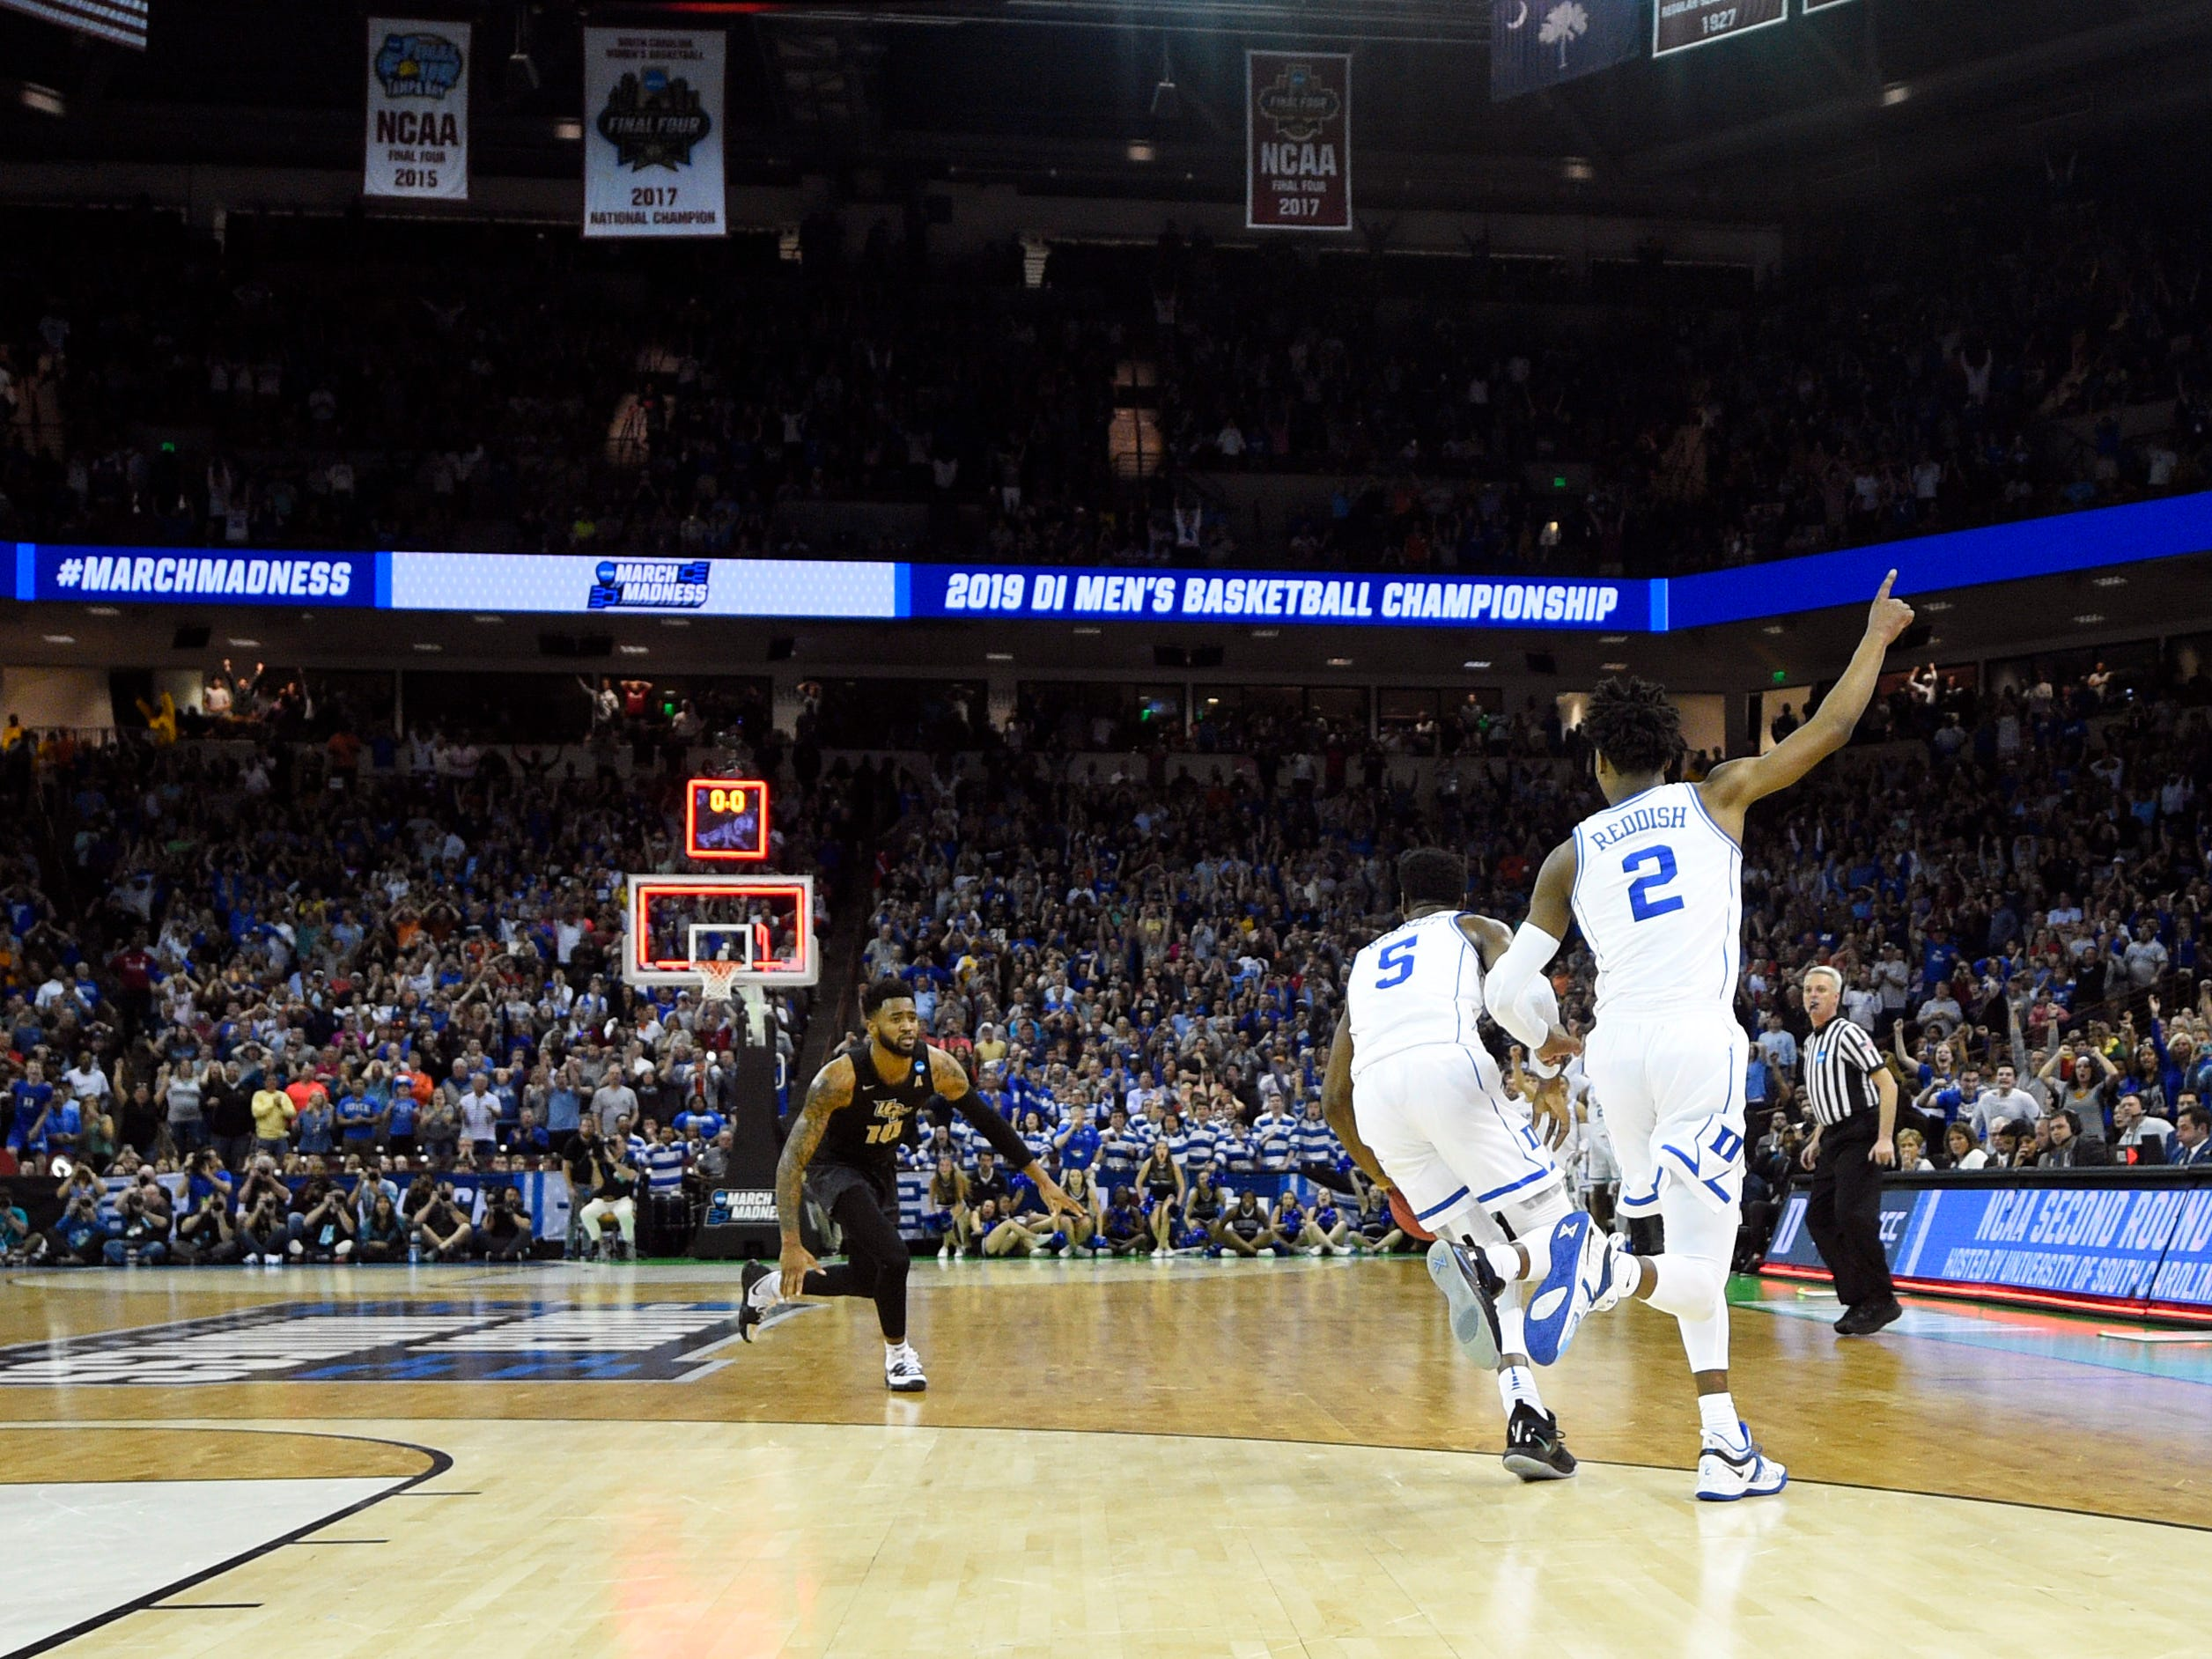 Round of 32: No. 1 Duke celebrates after surviving the final possession in a 77-76 win over No. 9 Central Florida.